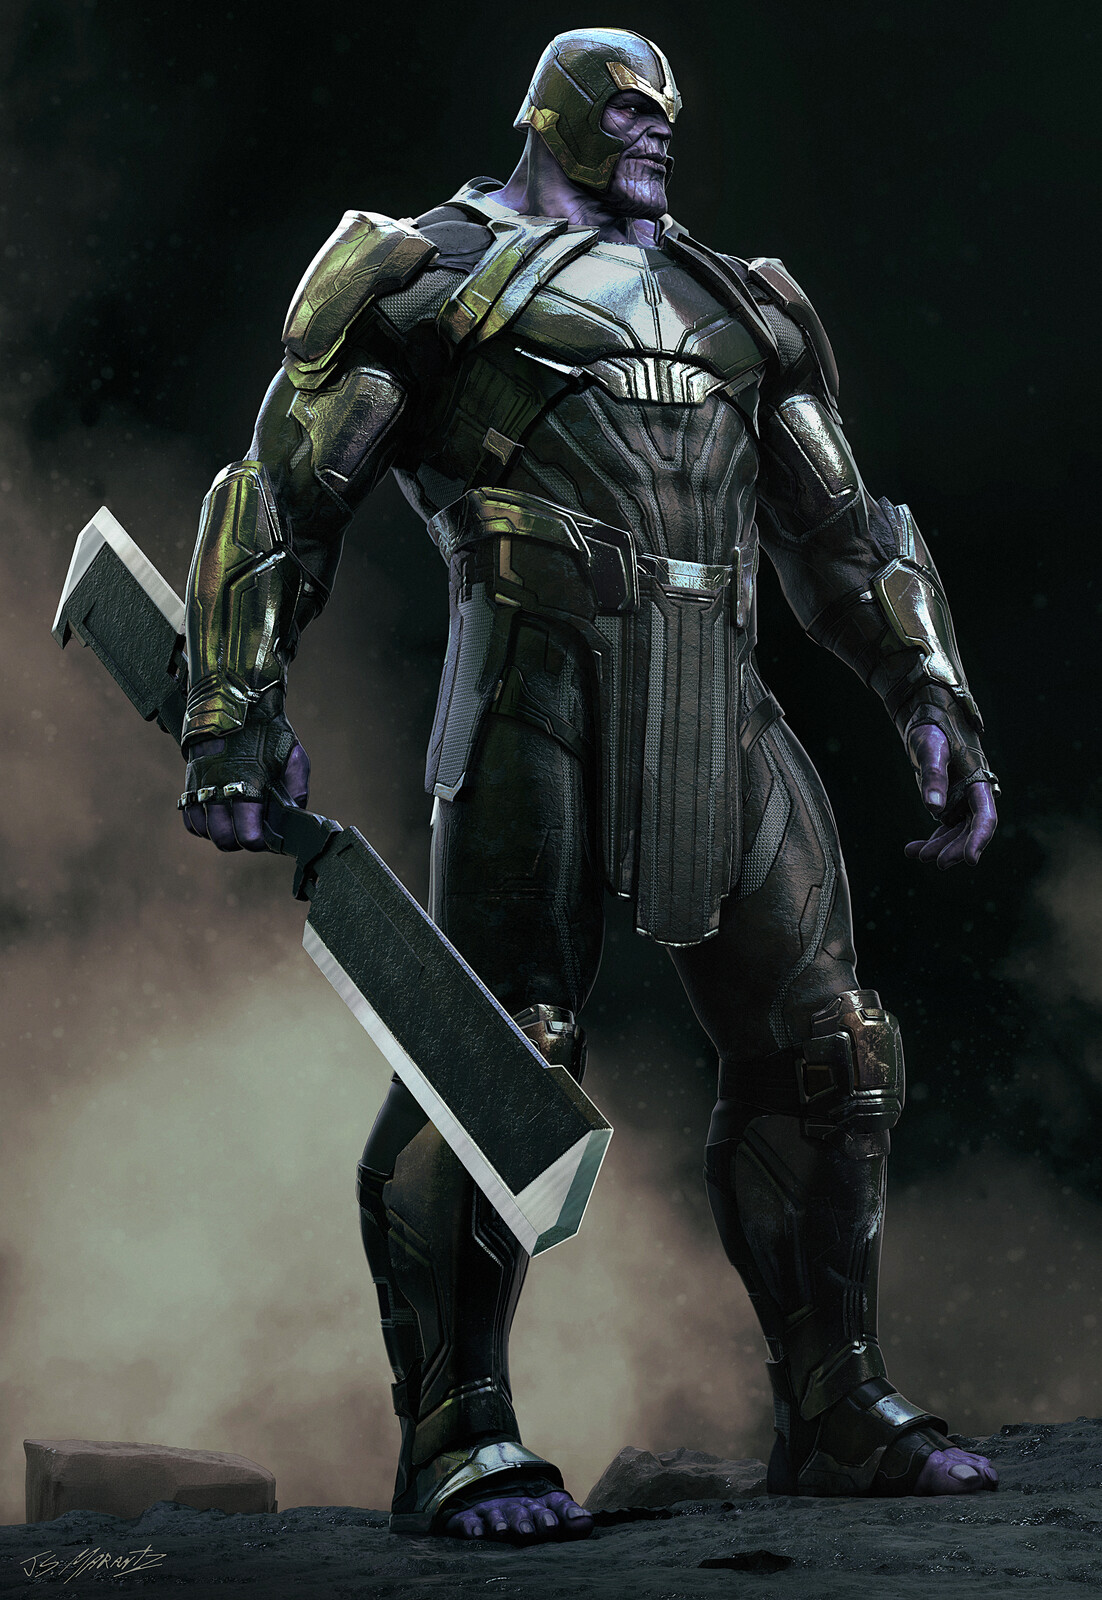 Avengers Endgame: Early Warrior Thanos Design